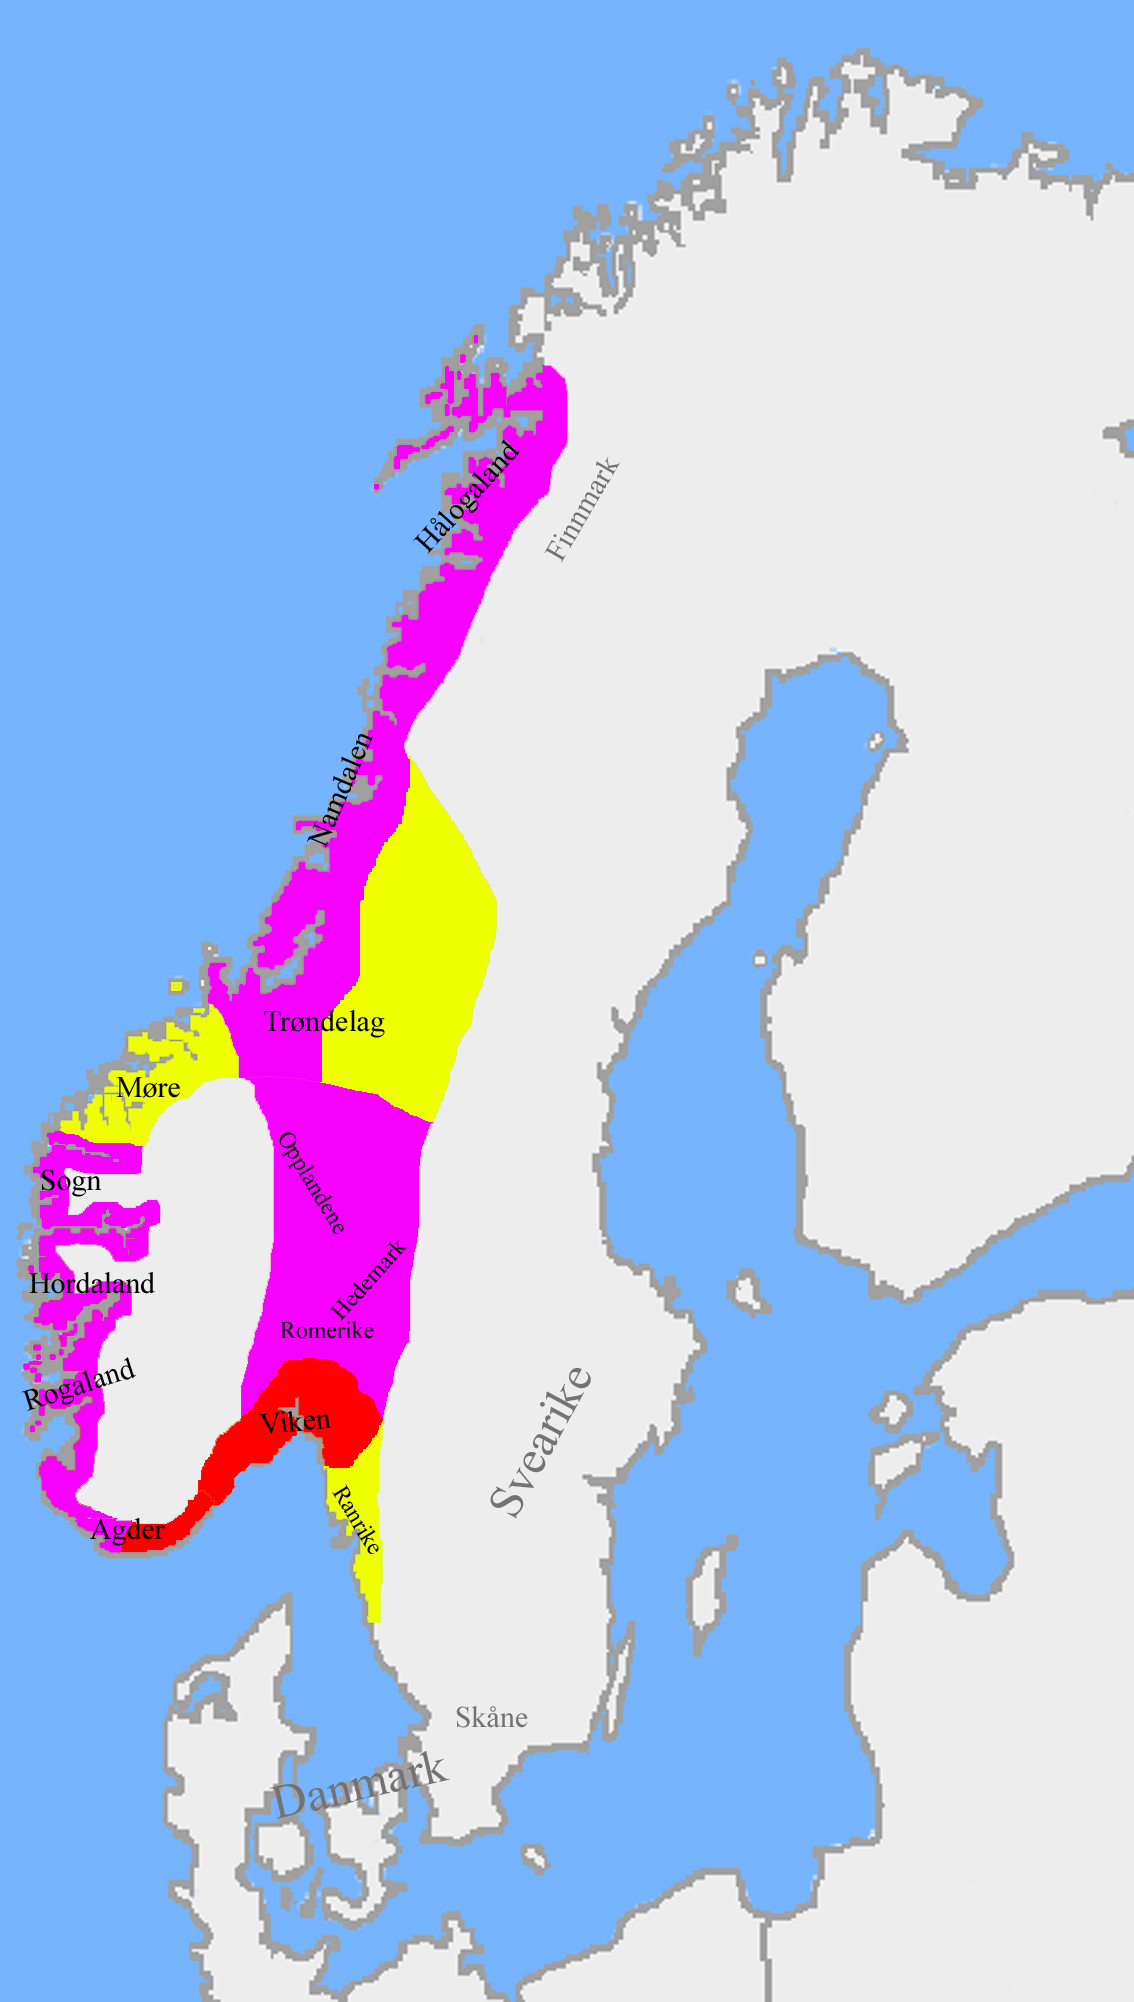 Norway 1000 Ad The Division Of The Kingdom After The Battle Of Svolder 1000 Between Sweden Yellow Denmark Red A History Of Norway Norway Historical Maps